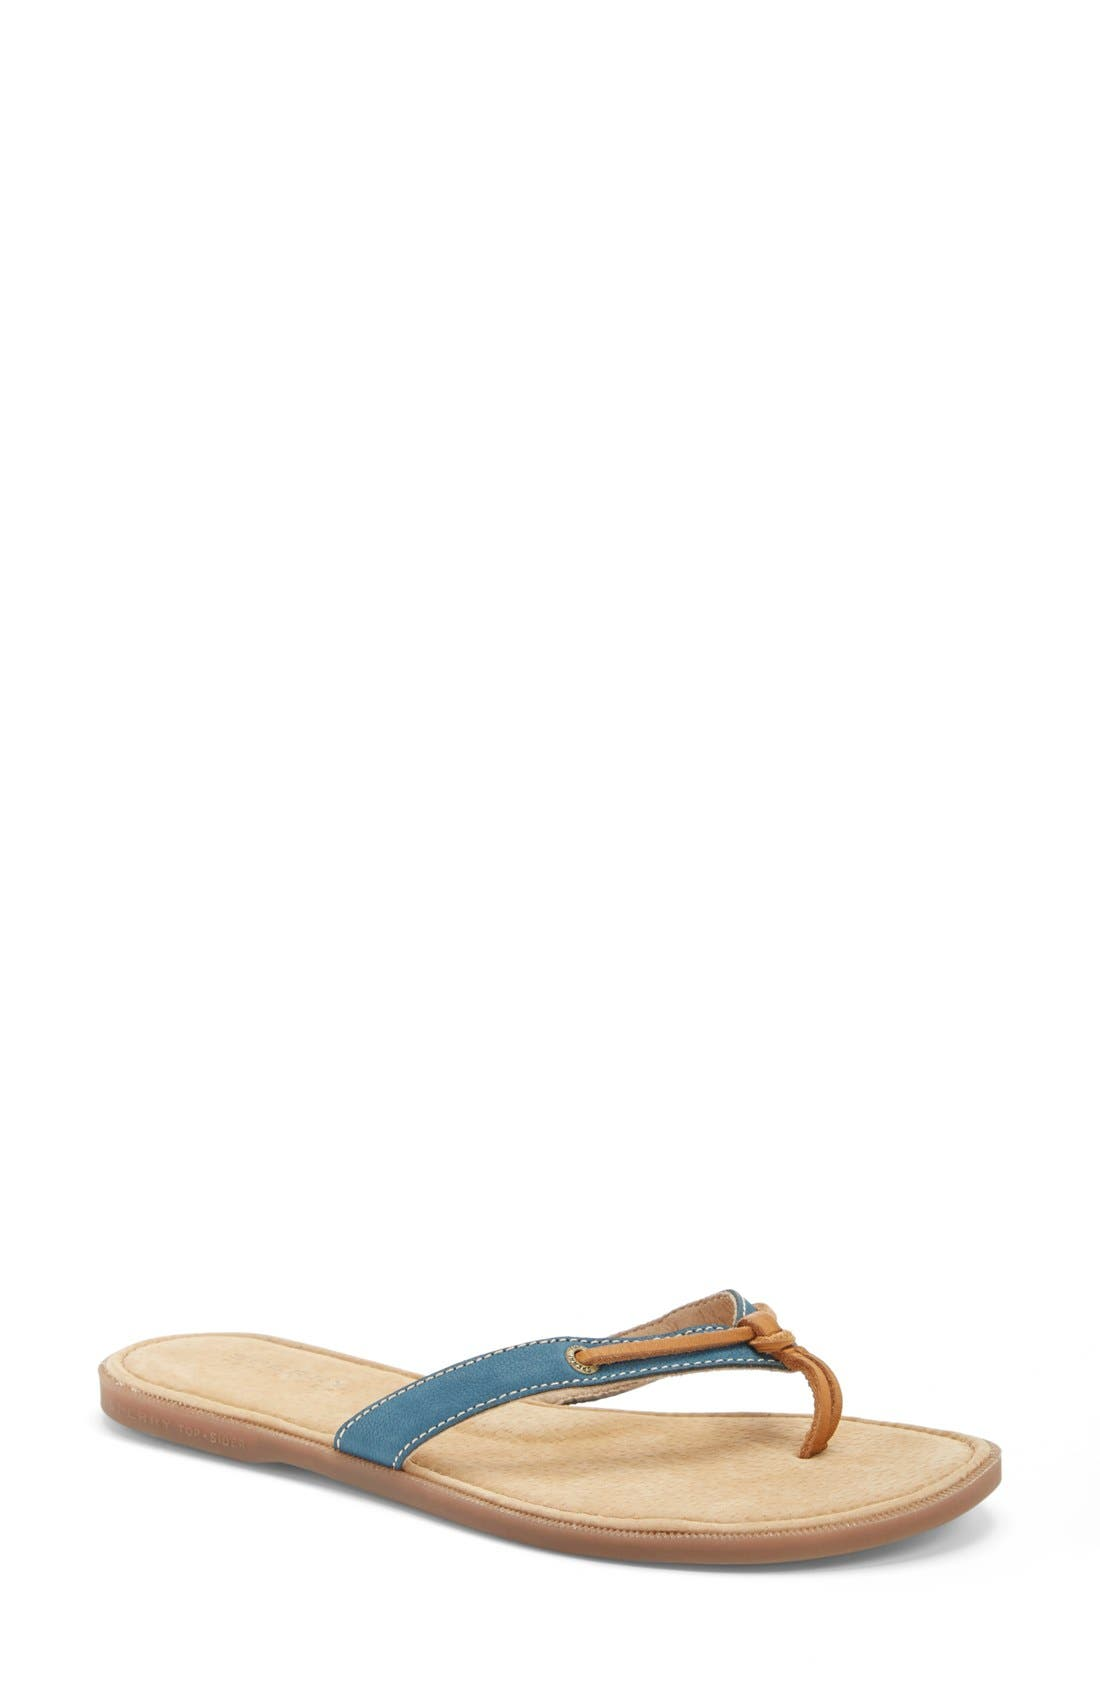 Alternate Image 1 Selected - Sperry 'Calla' Sandal